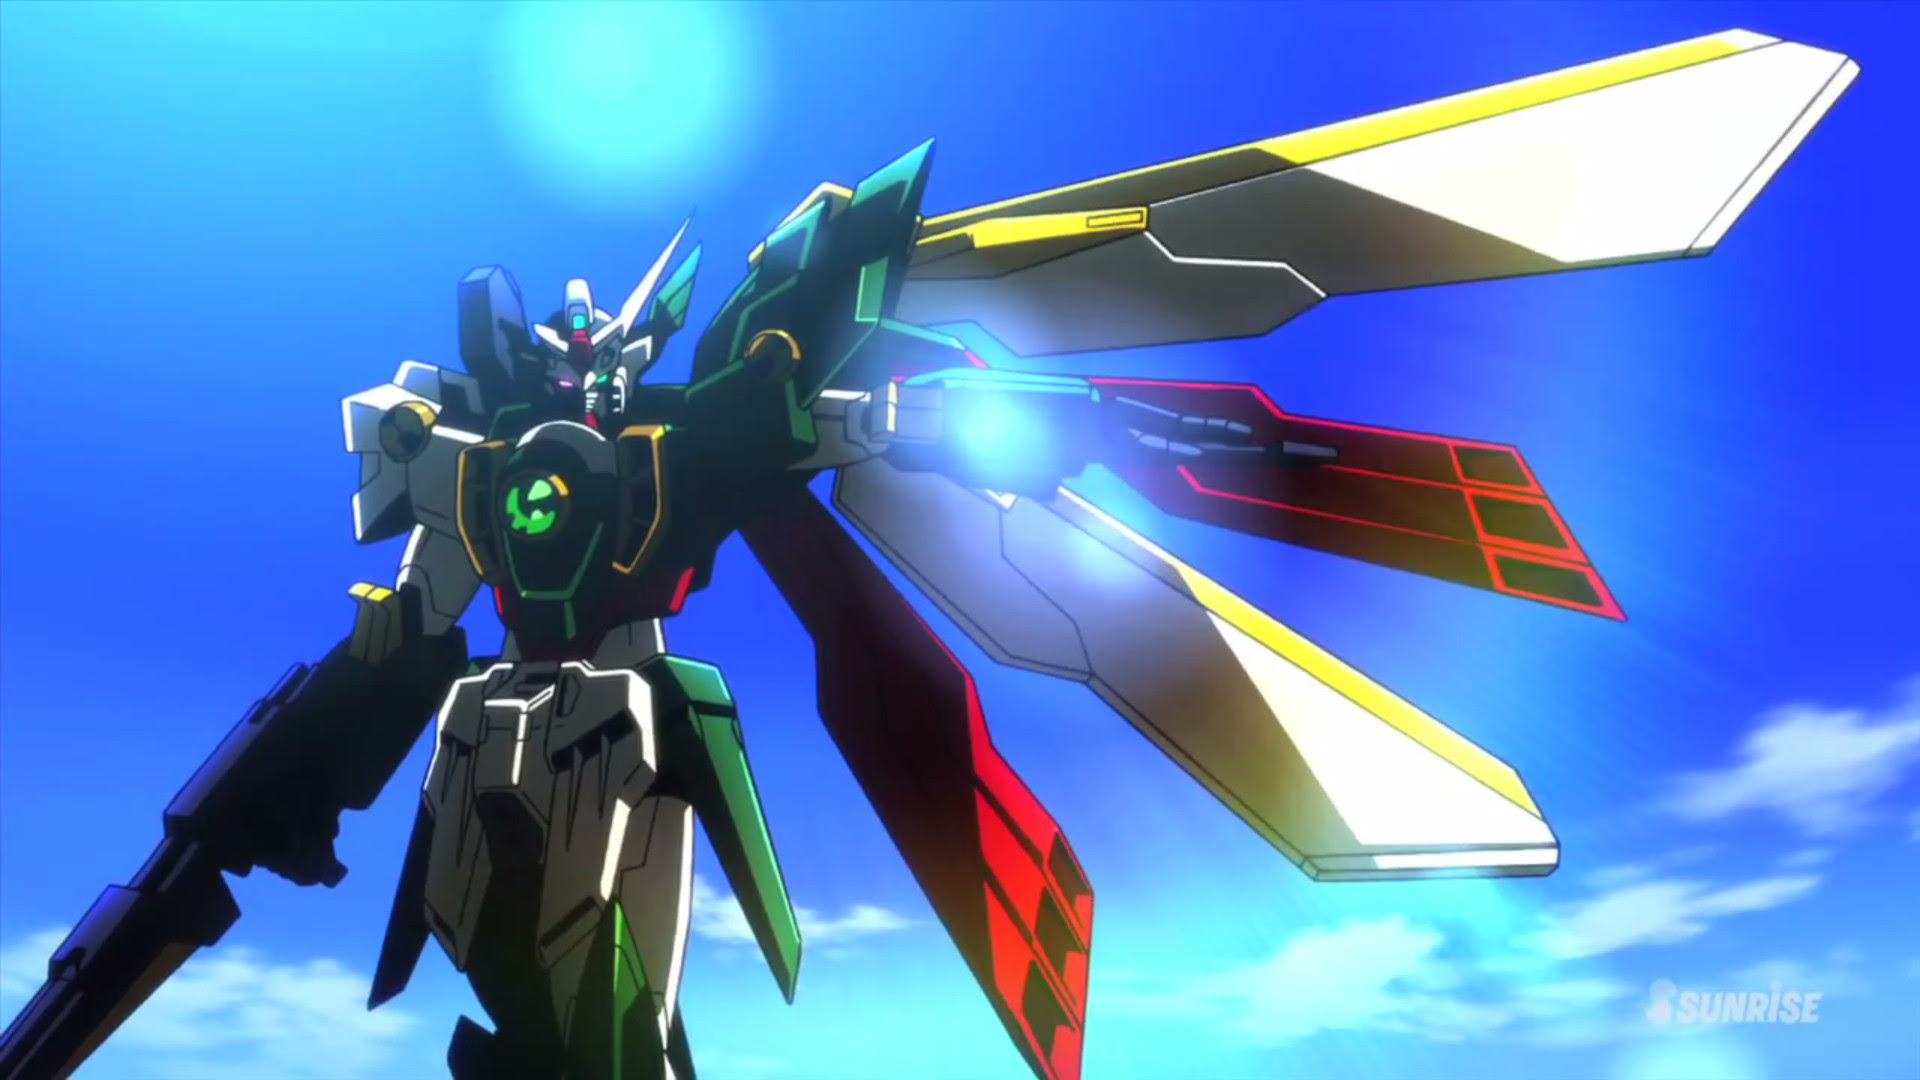 Gundam Wing Deathscythe Wallpaper 74 Images